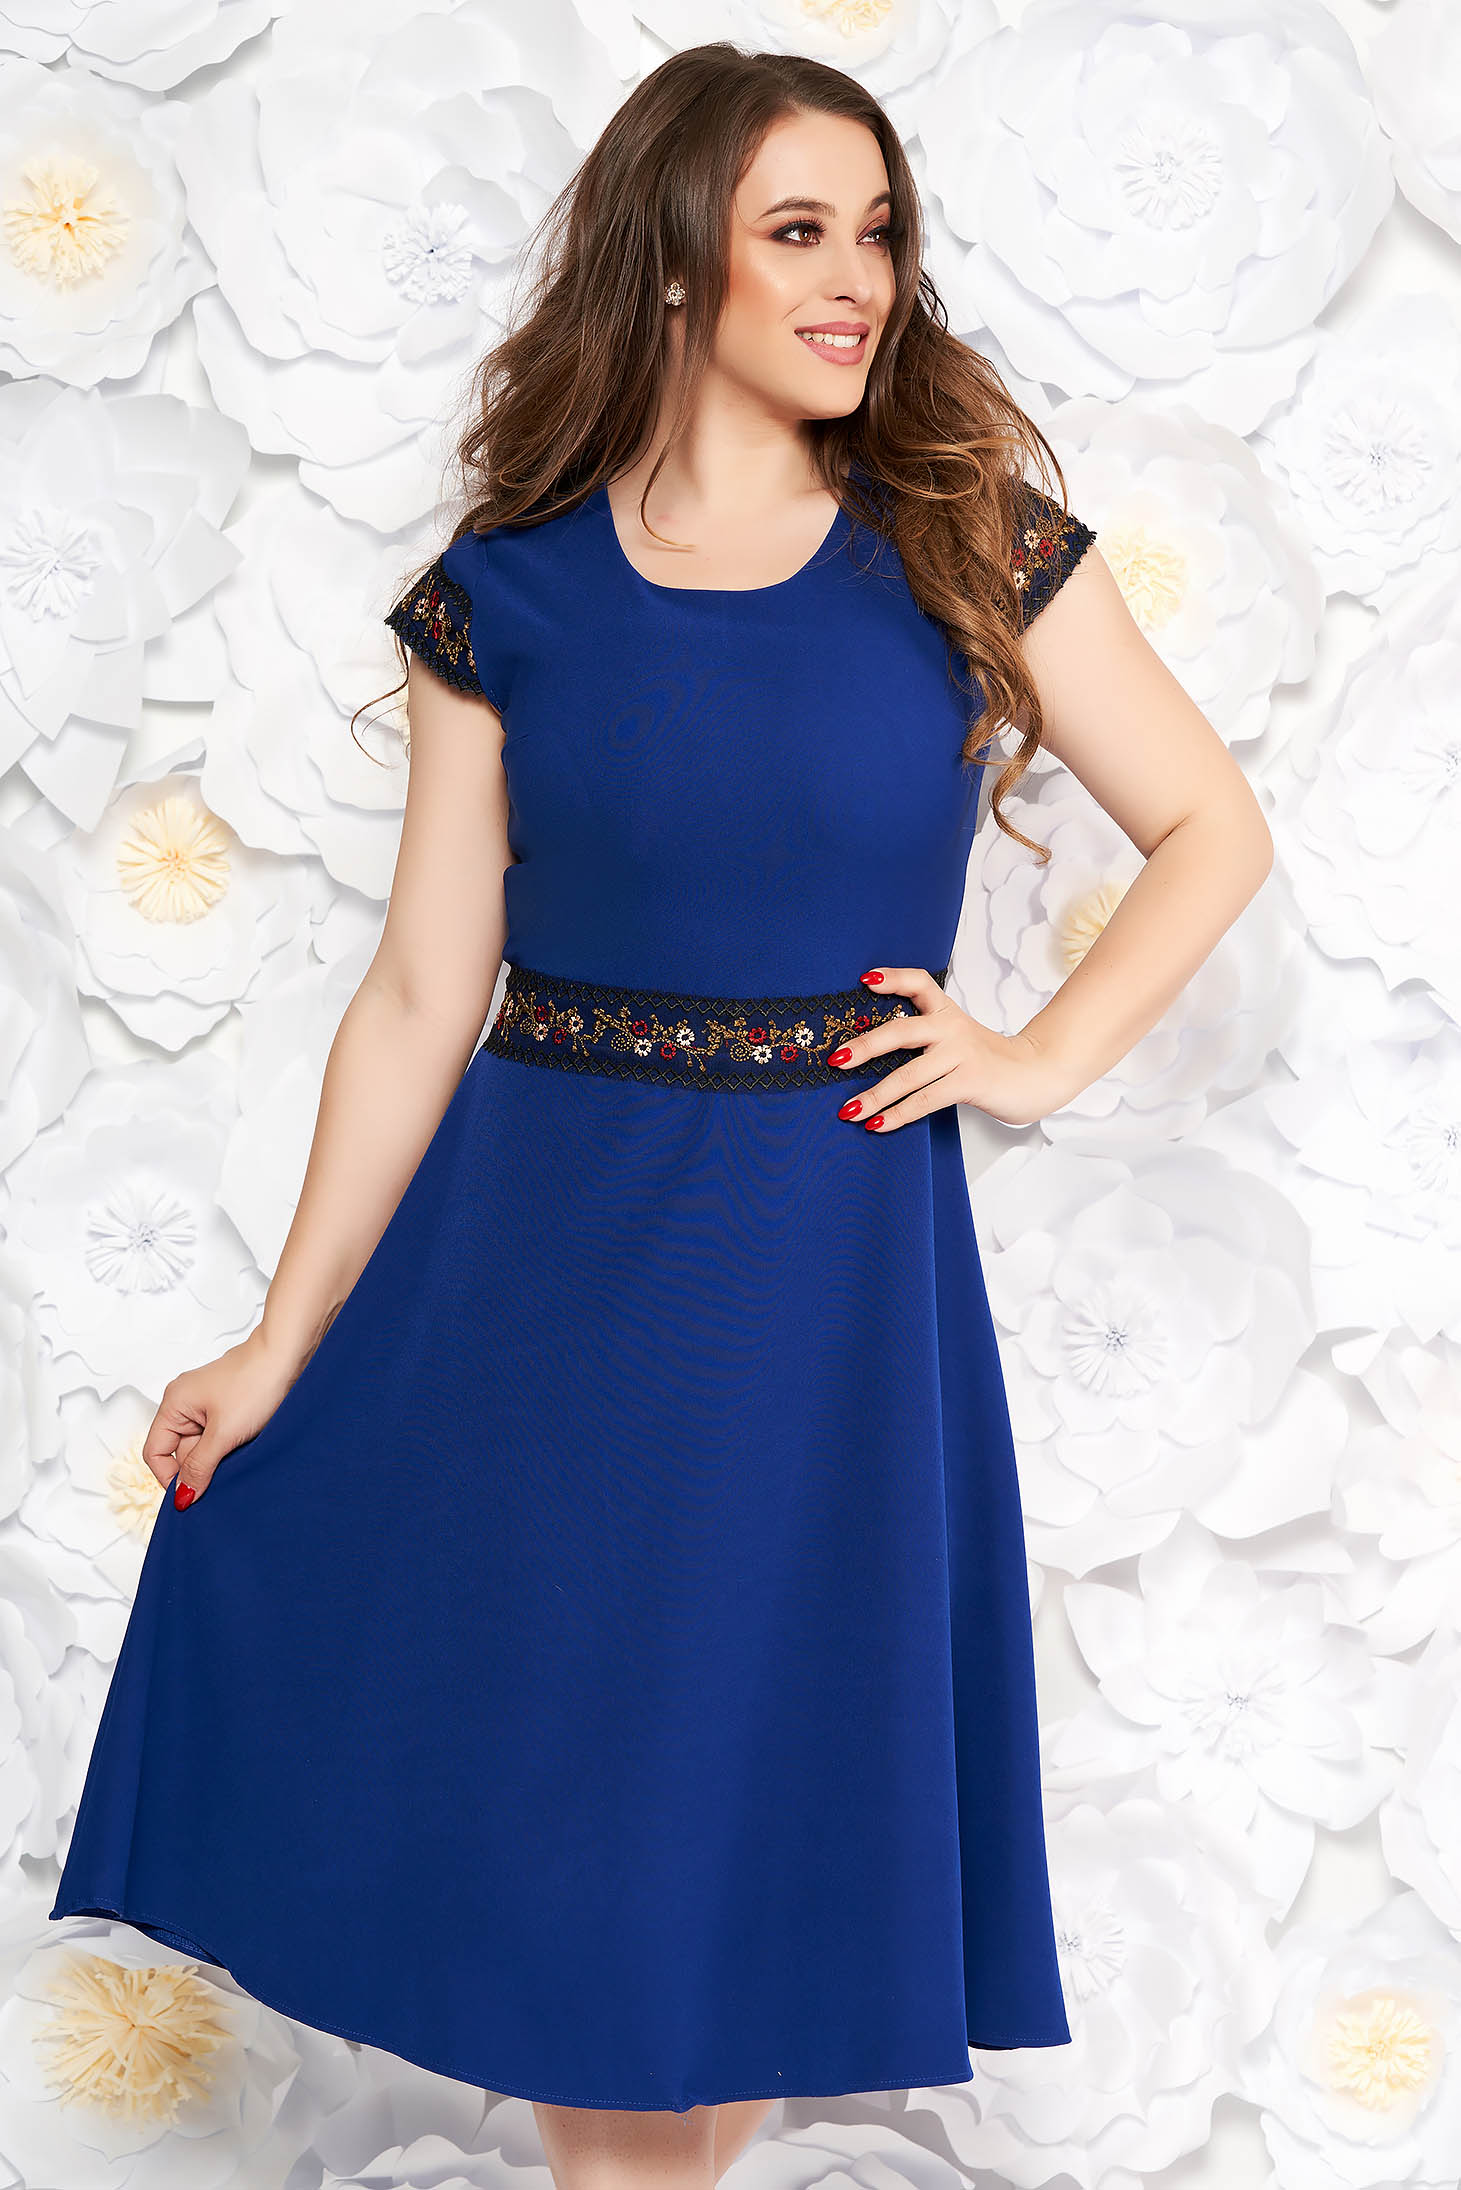 Blue elegant midi cloche dress slightly elastic fabric with embroidery details